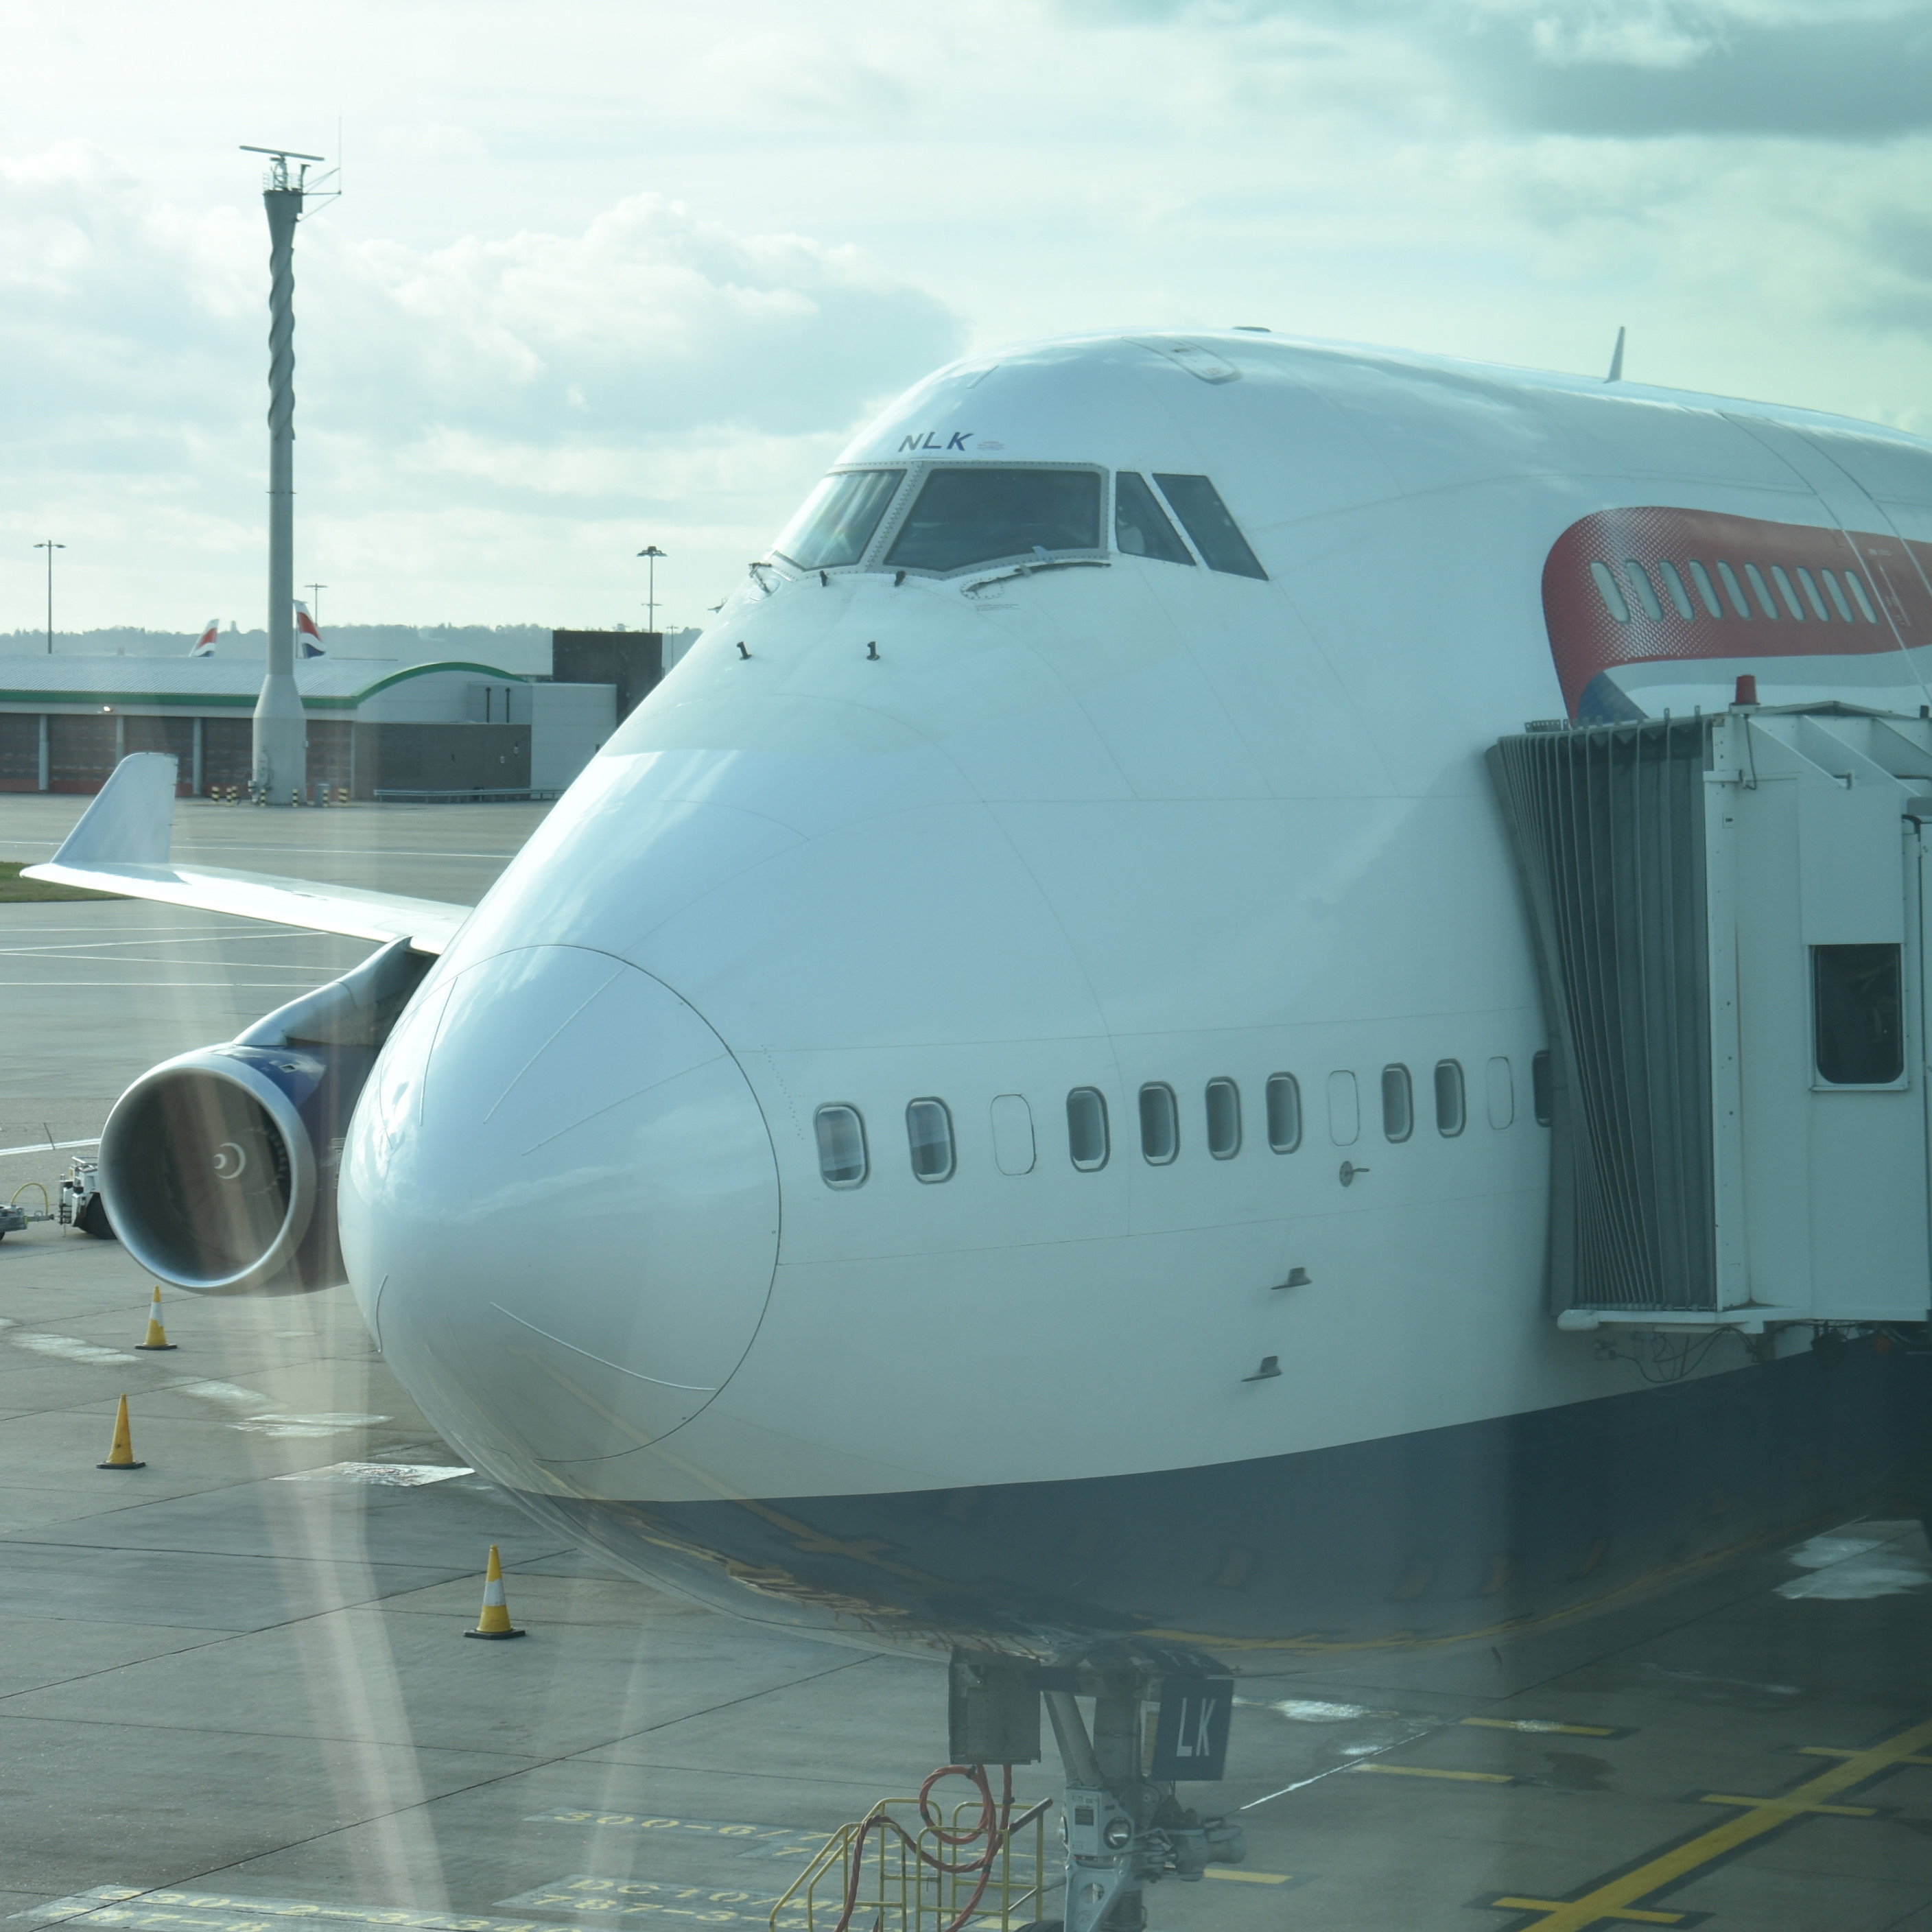 The British Airways 747 which flew me back from Phoenix, on the stand at Heathrow Terminal 3.